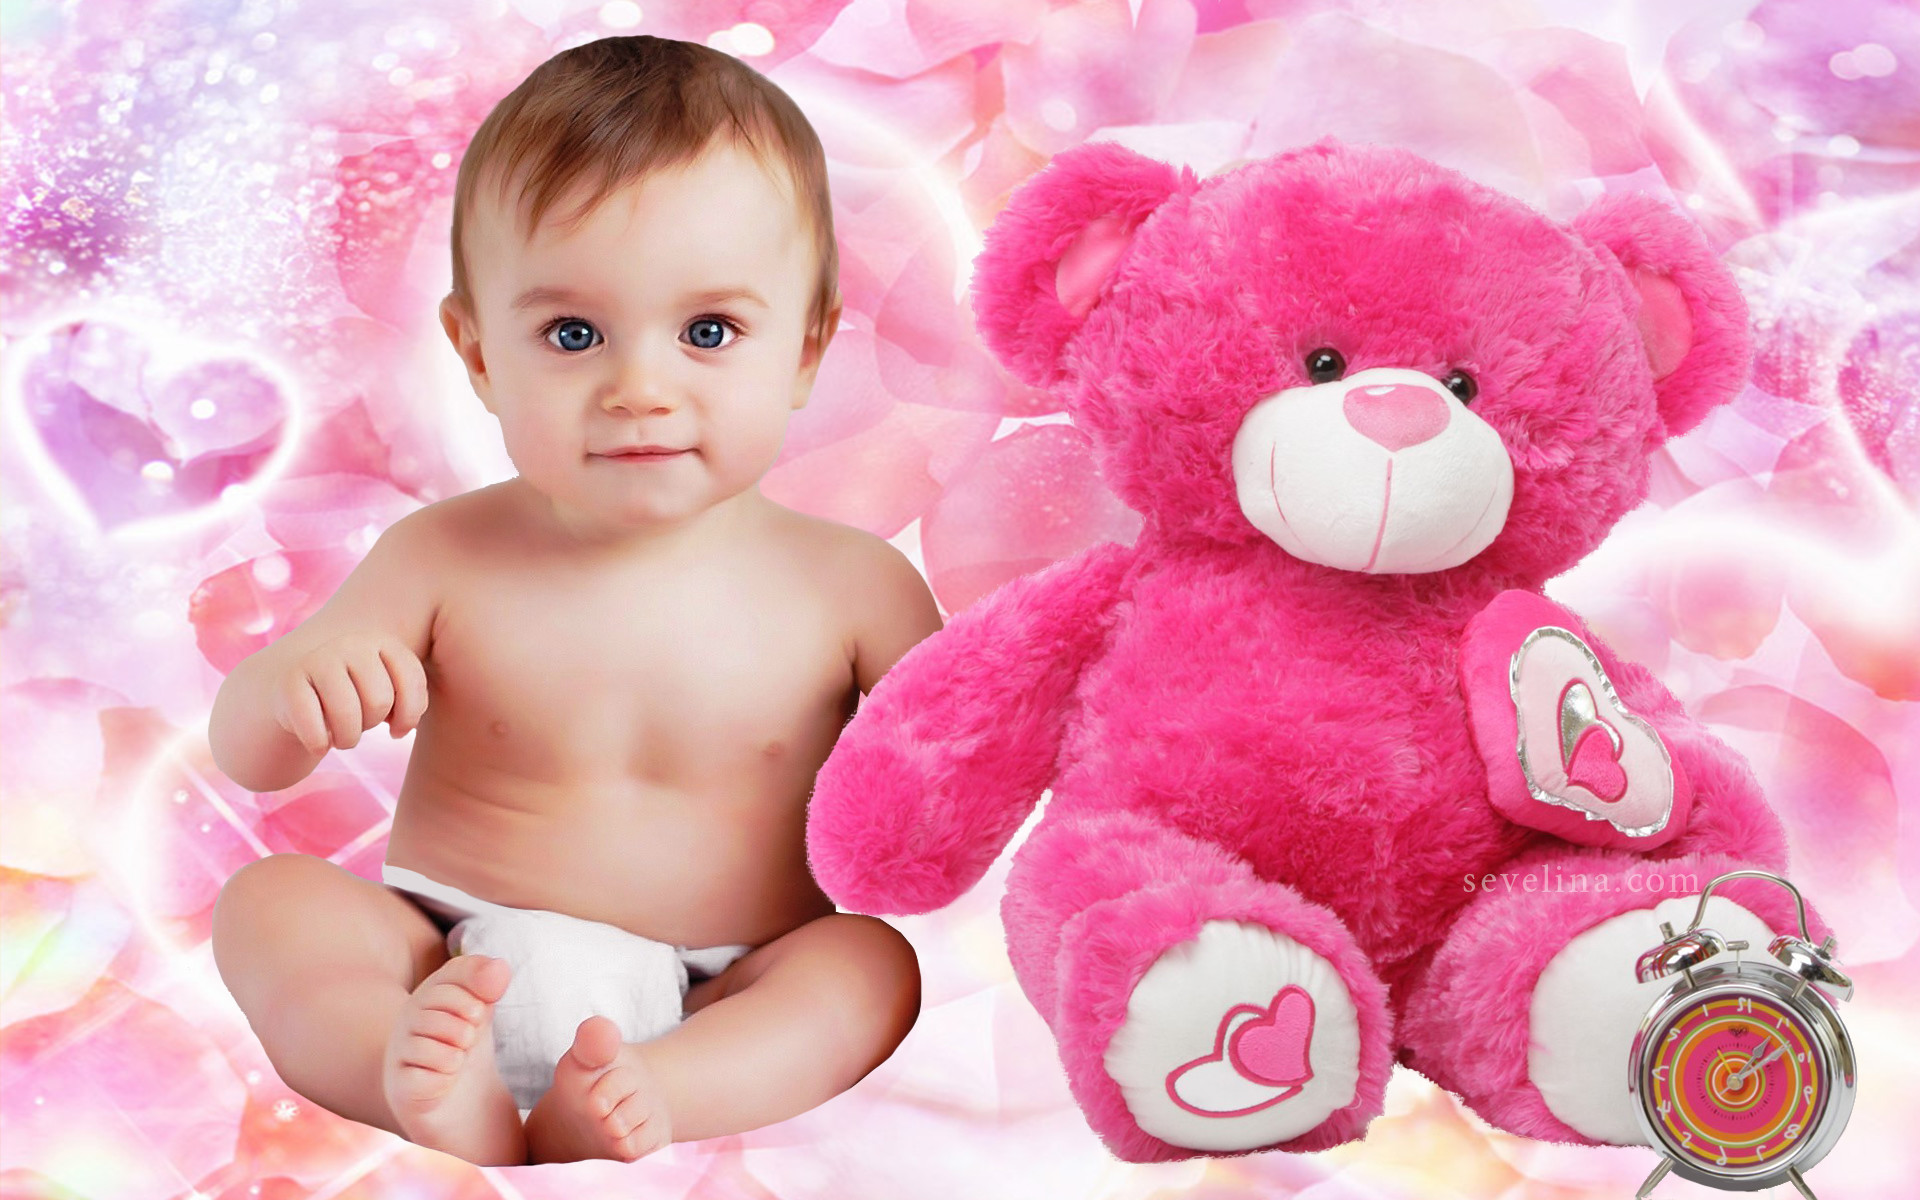 1920x1200 Baby-and-teddy-love-you-valentine-day wallpapers 2014 ...